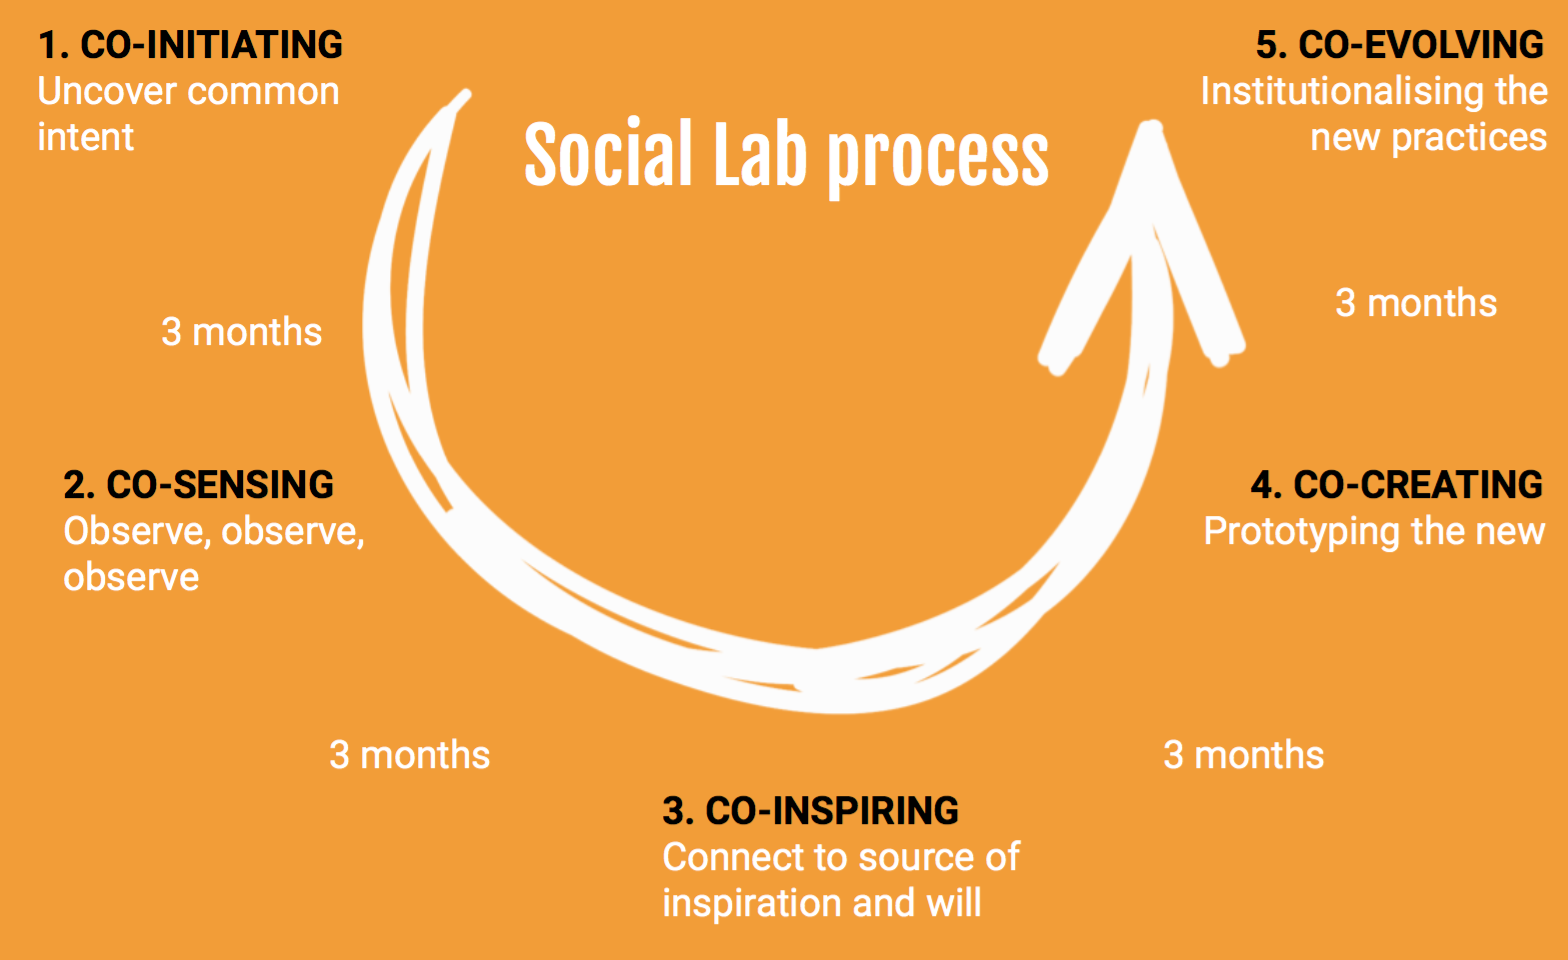 Inspired by Theory-U, Presencing institute:  https://www.presencing.org  (collective comments)